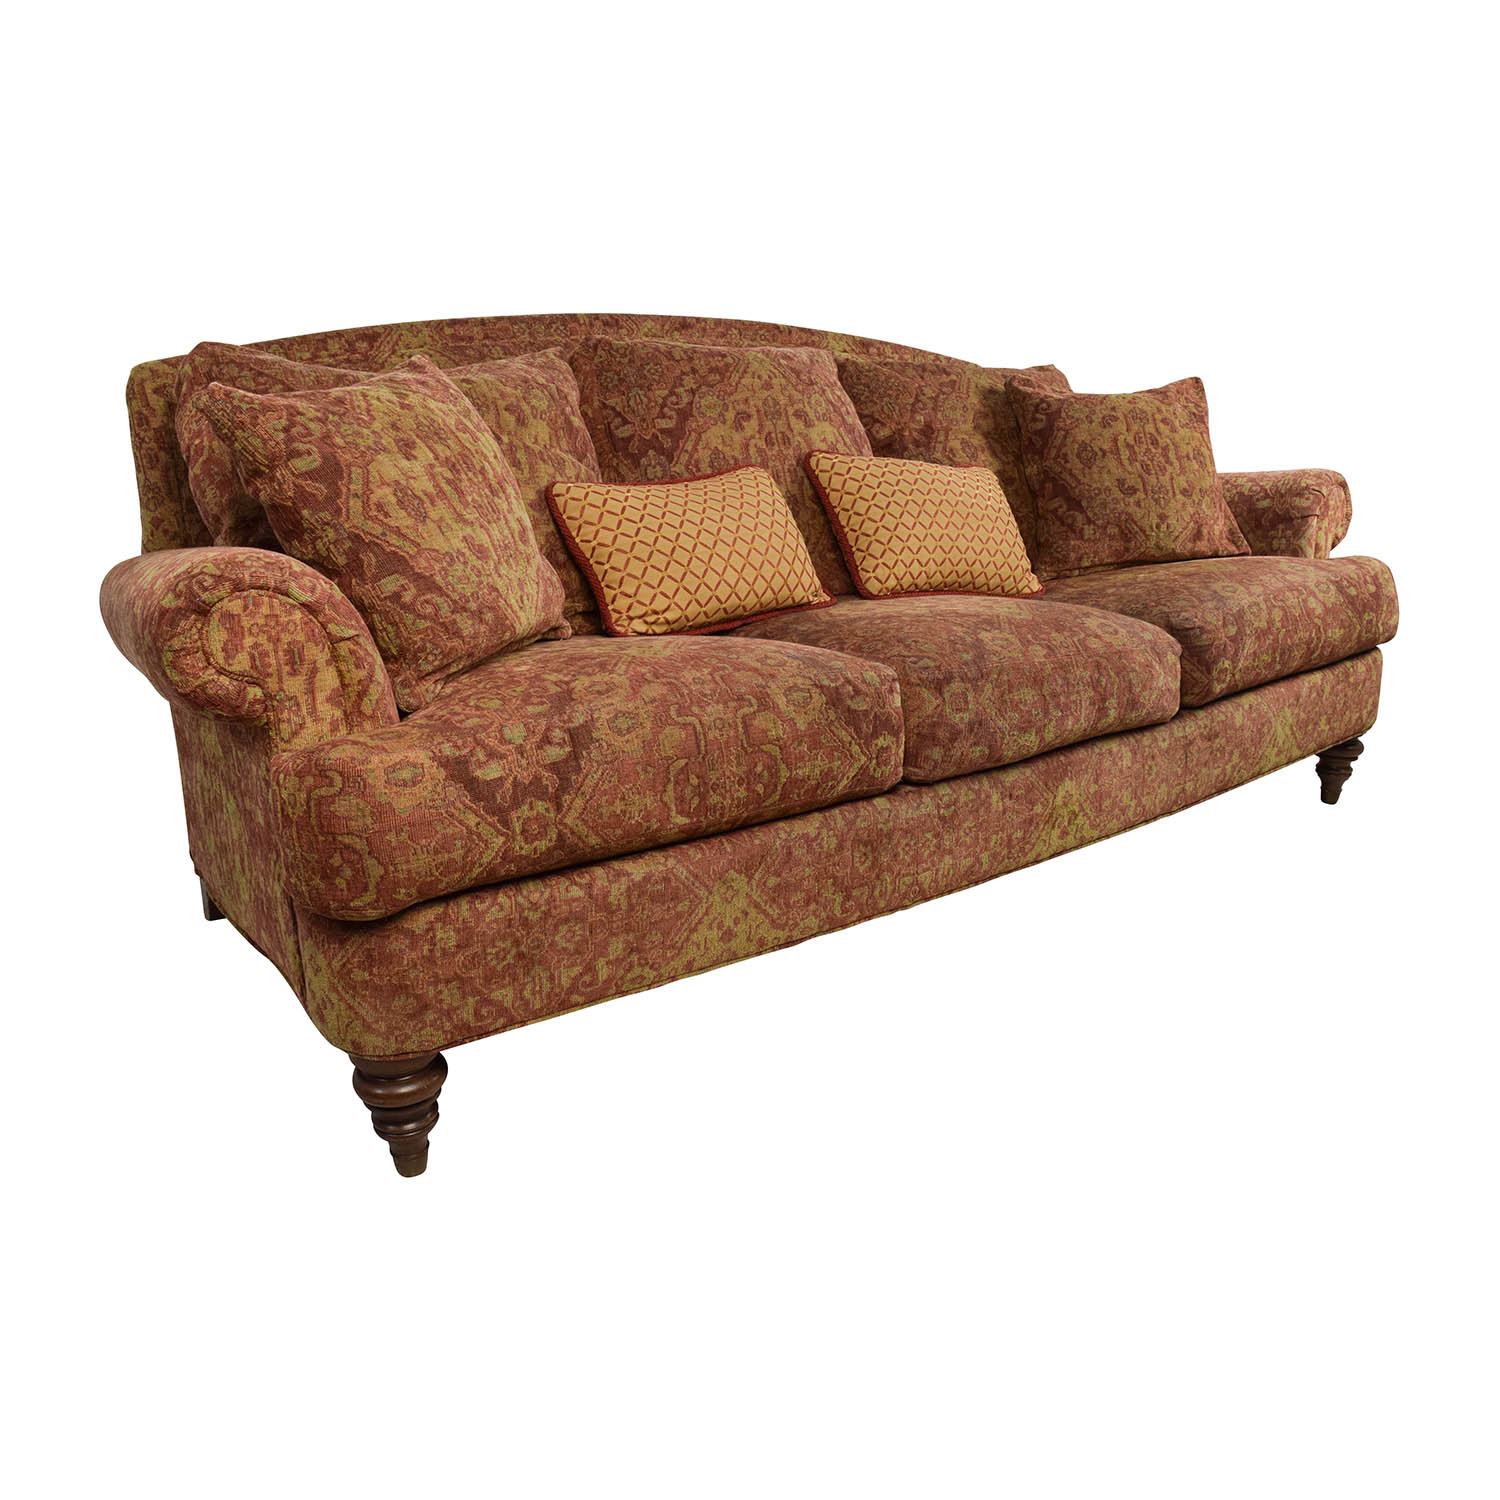 Ethan Allen Sofas Gallery Of Full Size Of Sofas U